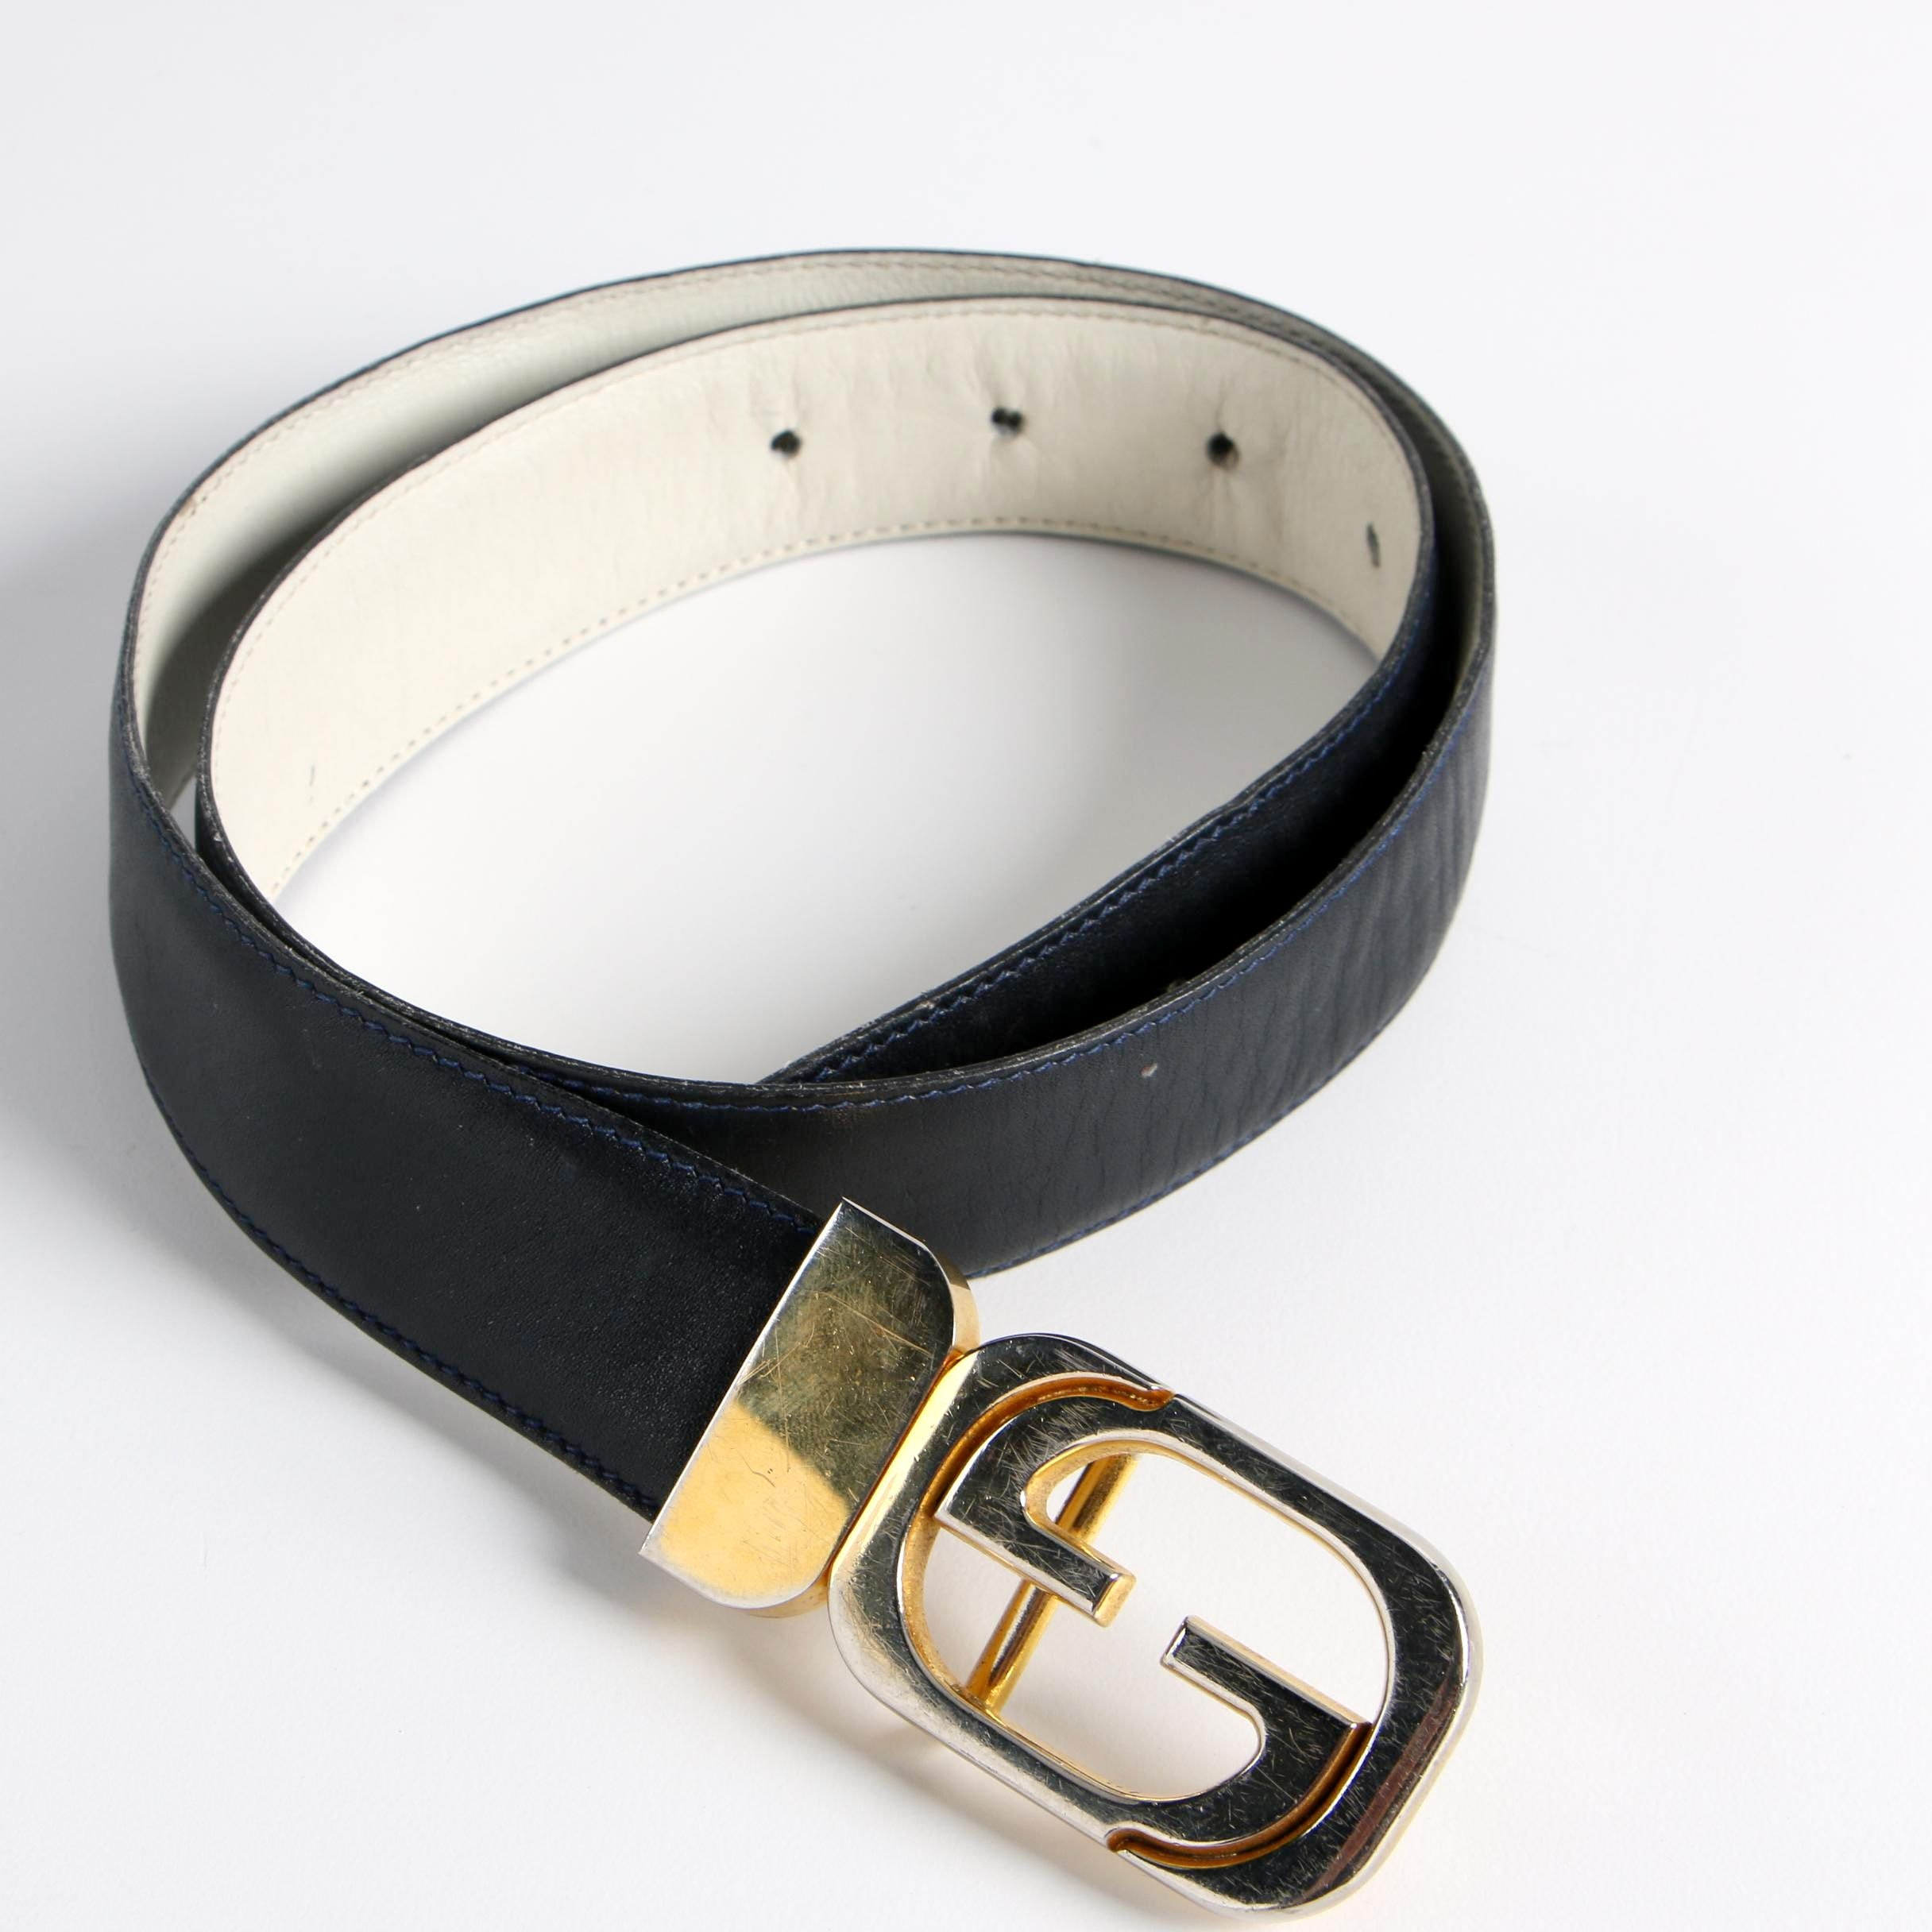 Gucci Navy Leather Belt with Gold Tone Buckle